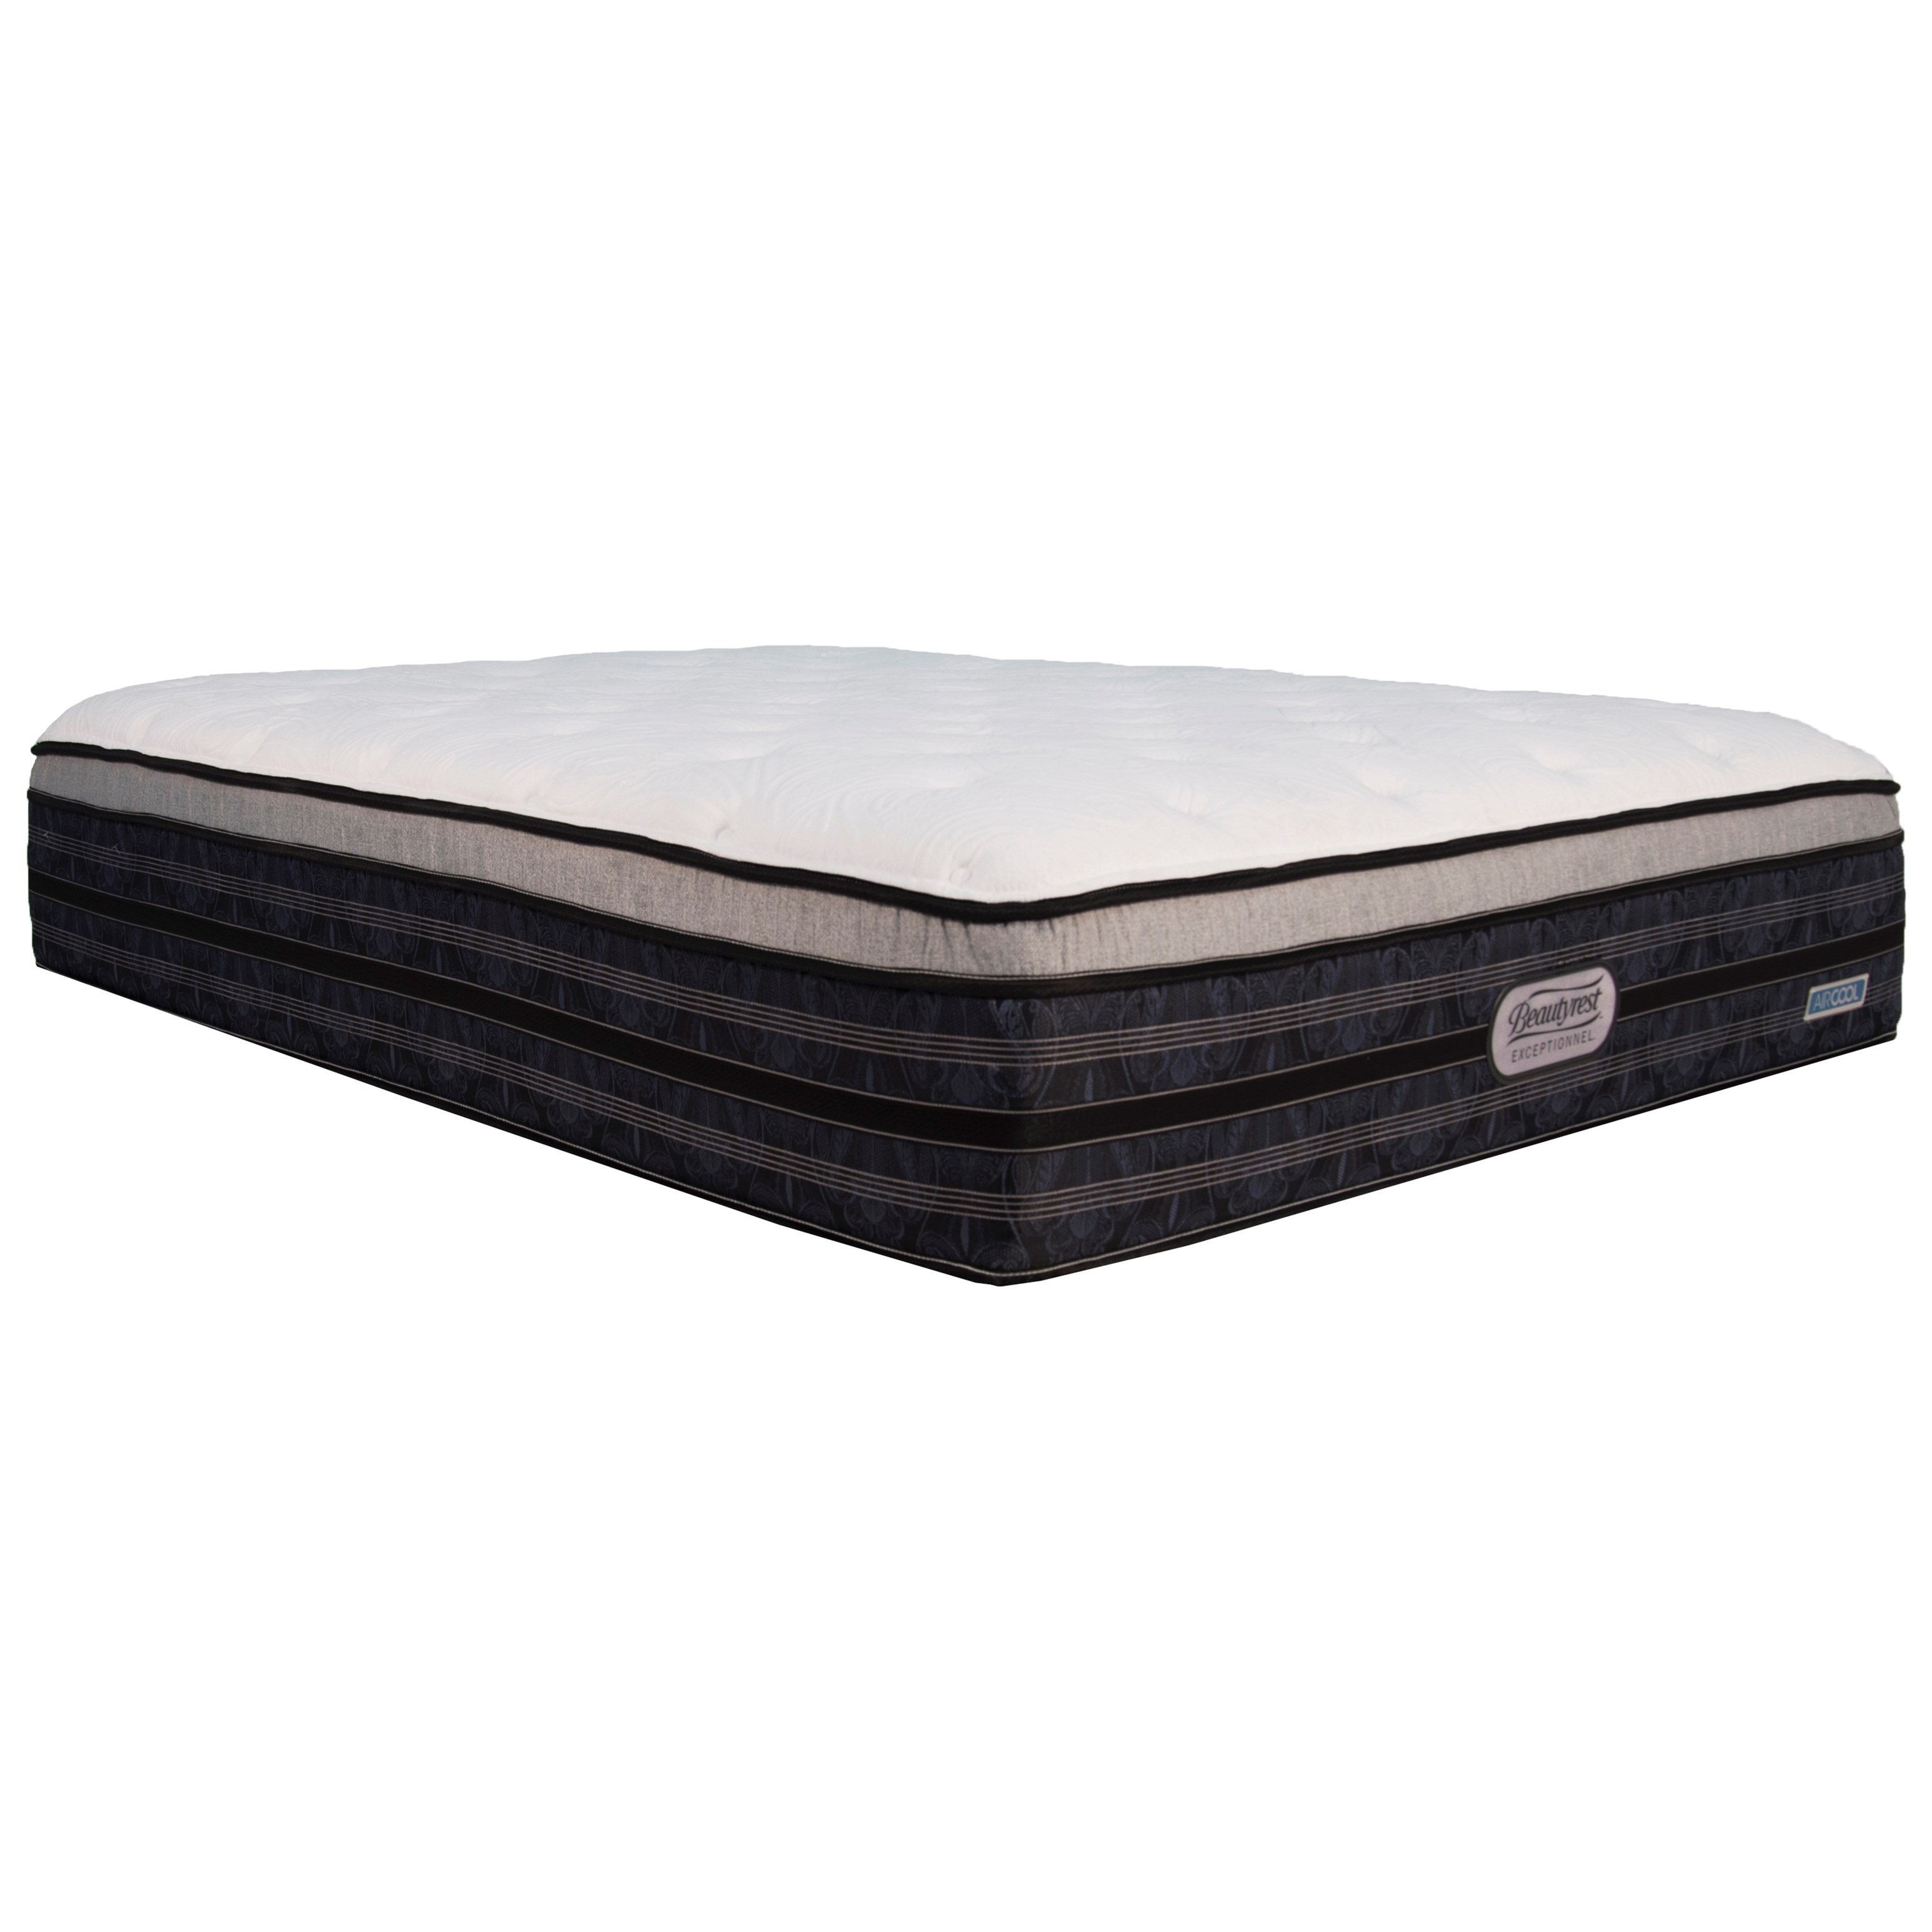 BR Exceptionnel Saffron CT Plush Twin Comfort Top Plush Mattress by Beautyrest Canada at Jordan's Home Furnishings